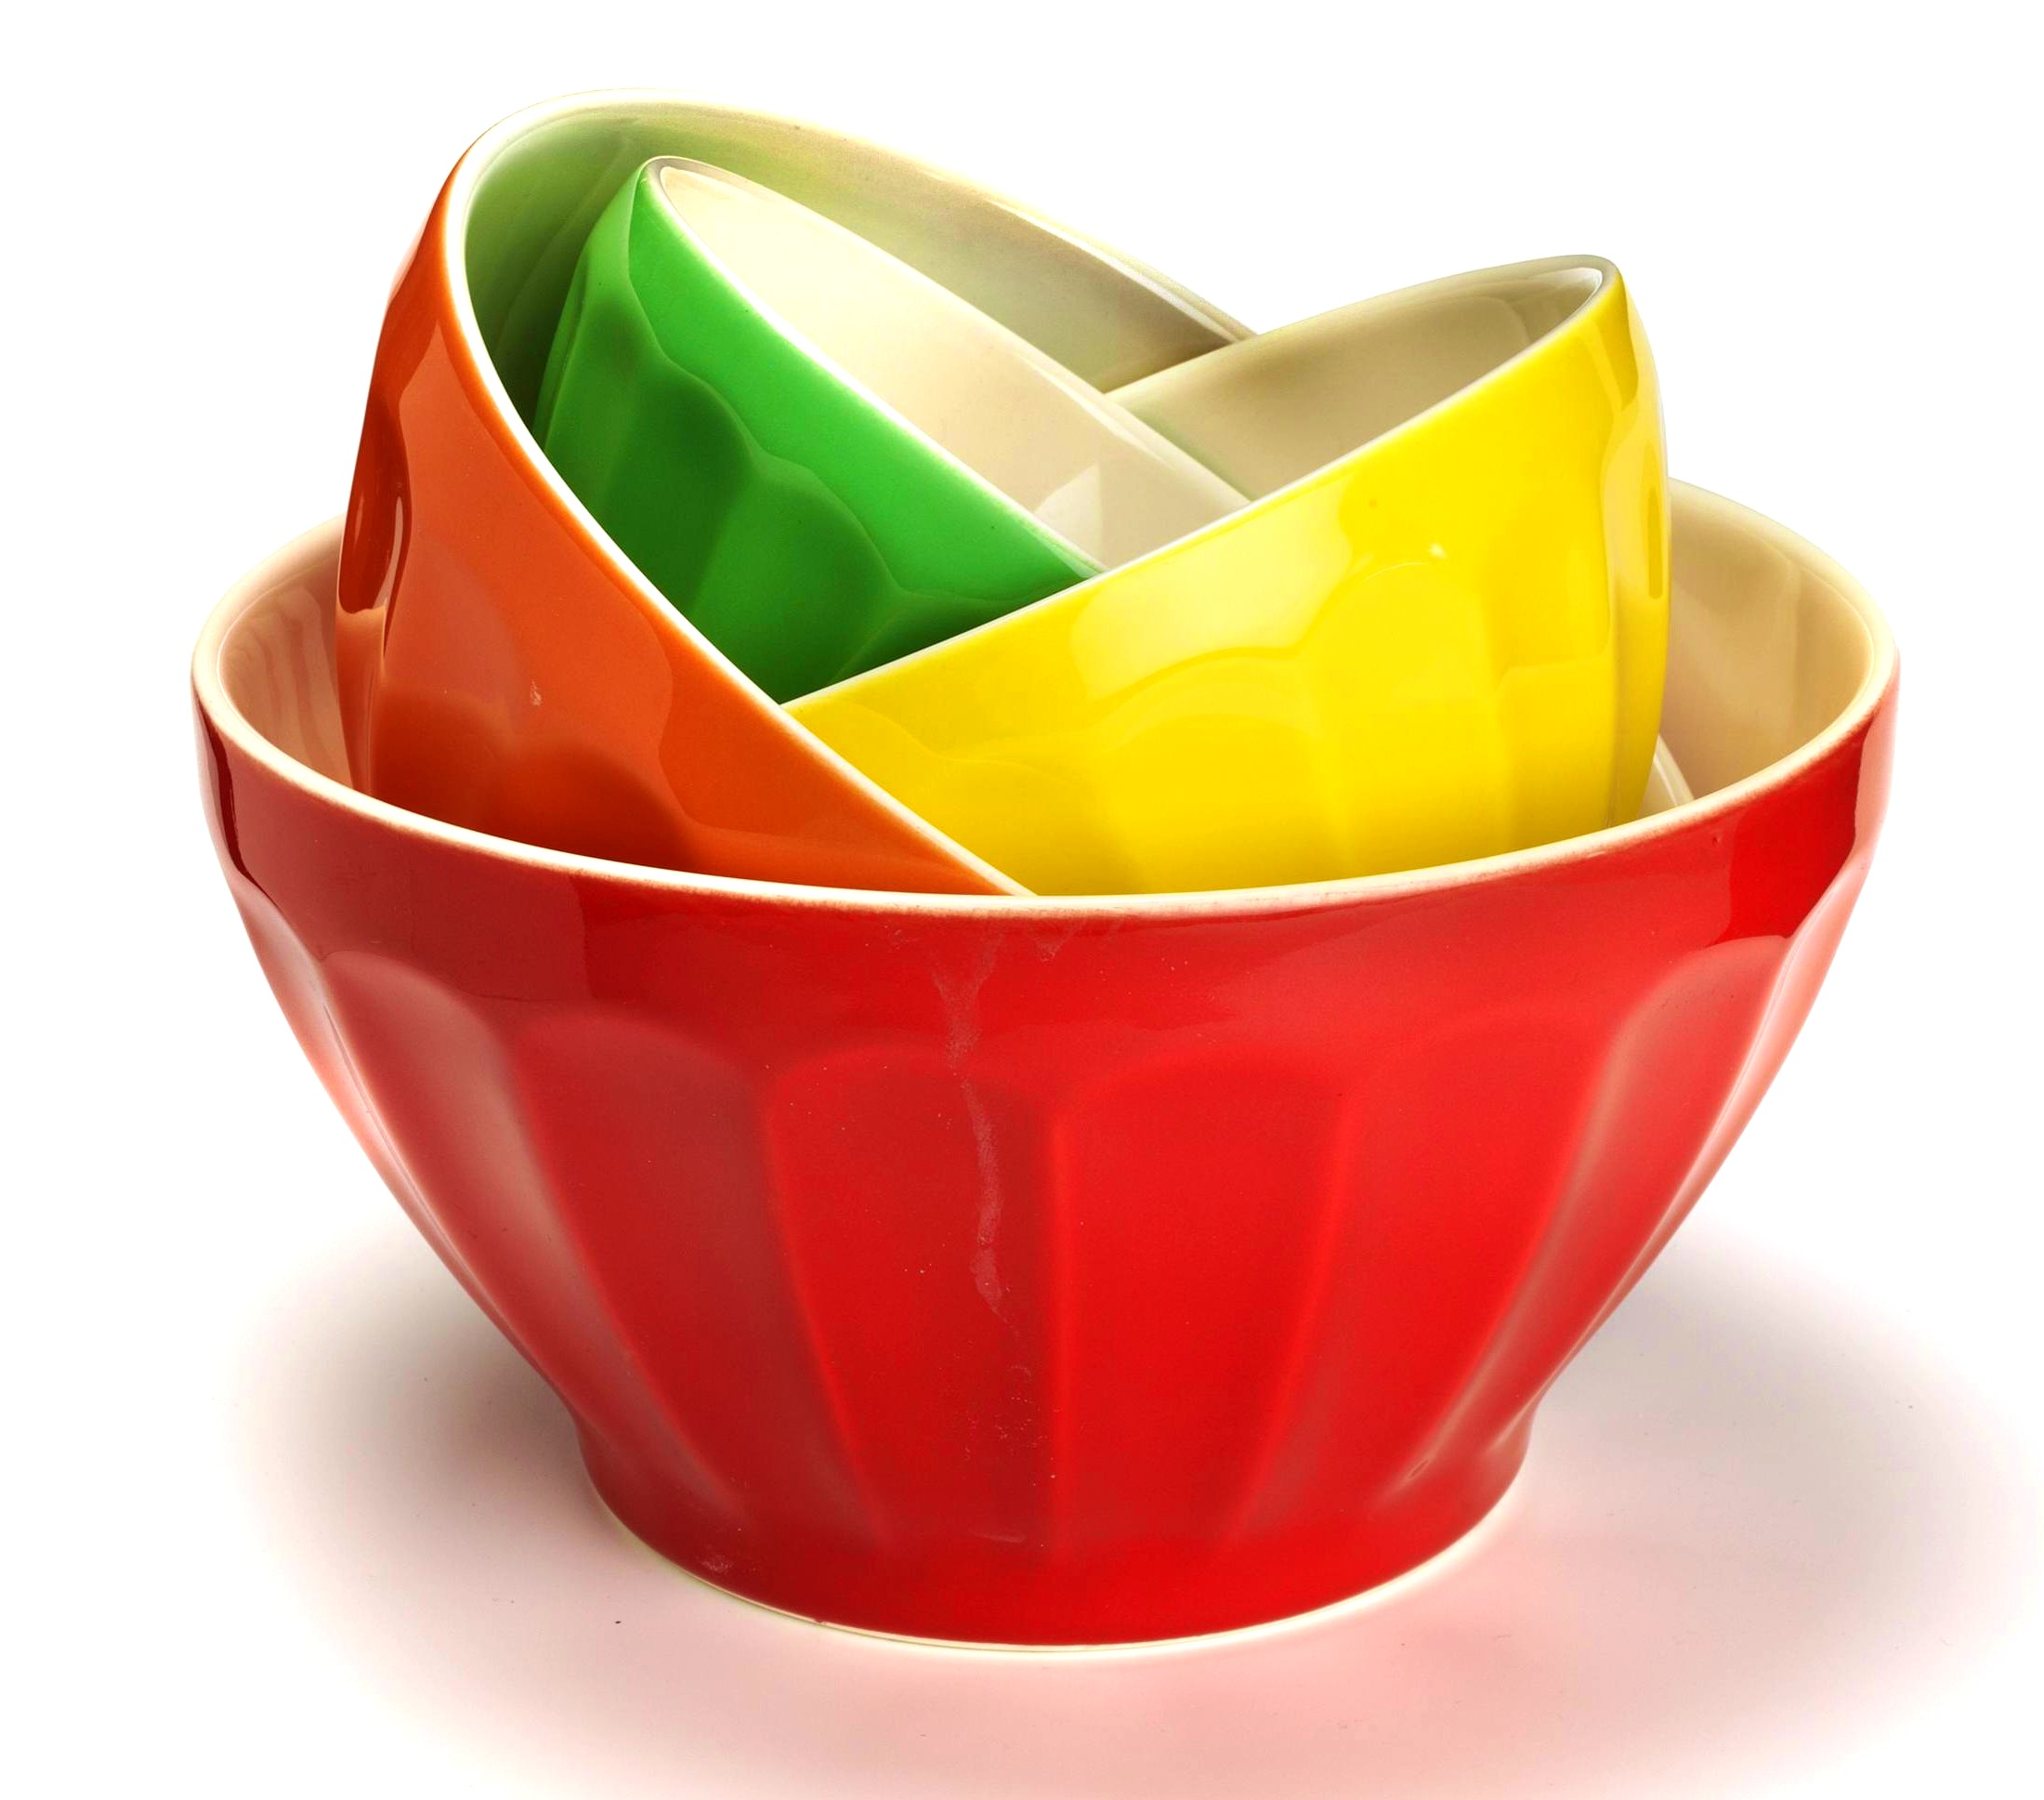 Pictures Of Mixing Bowls - ClipArt Best